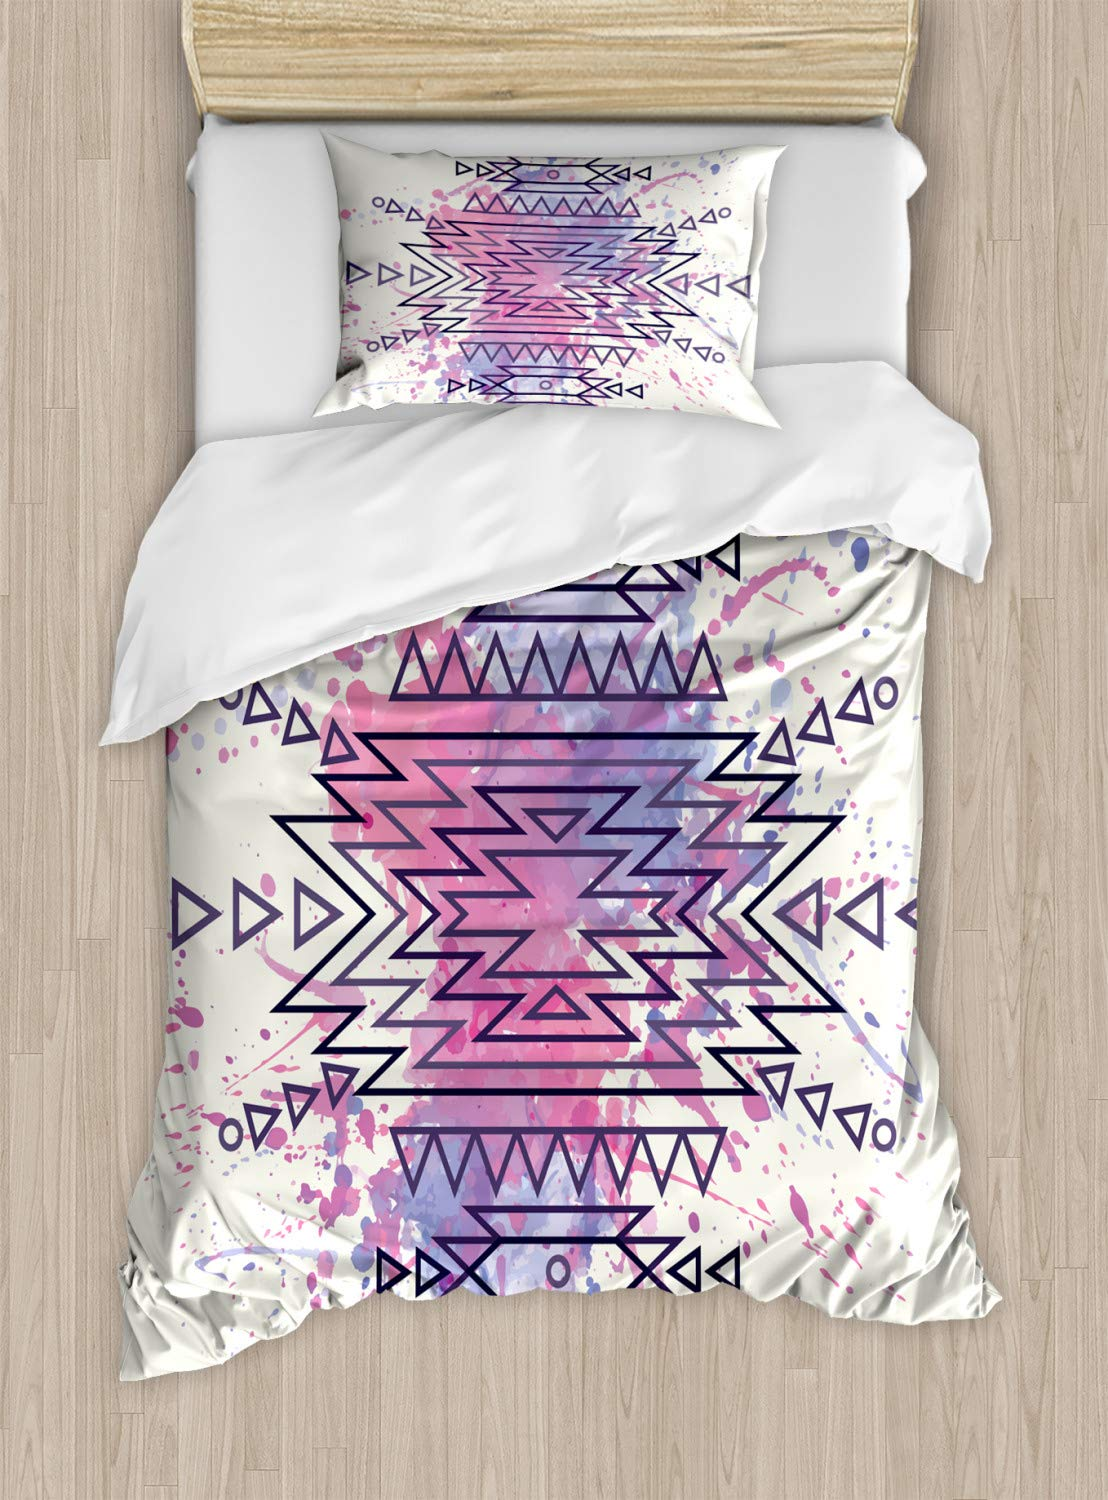 Multicolor nev/_26088/_queen Cool Fancy Hard Cute Rocker Band of Kittens with Singer Guitarist Cats Theme Print Queen//Full A Decorative 3 Piece Bedding Set with Pillow Shams Ambesonne Animal Decor Duvet Cover Set